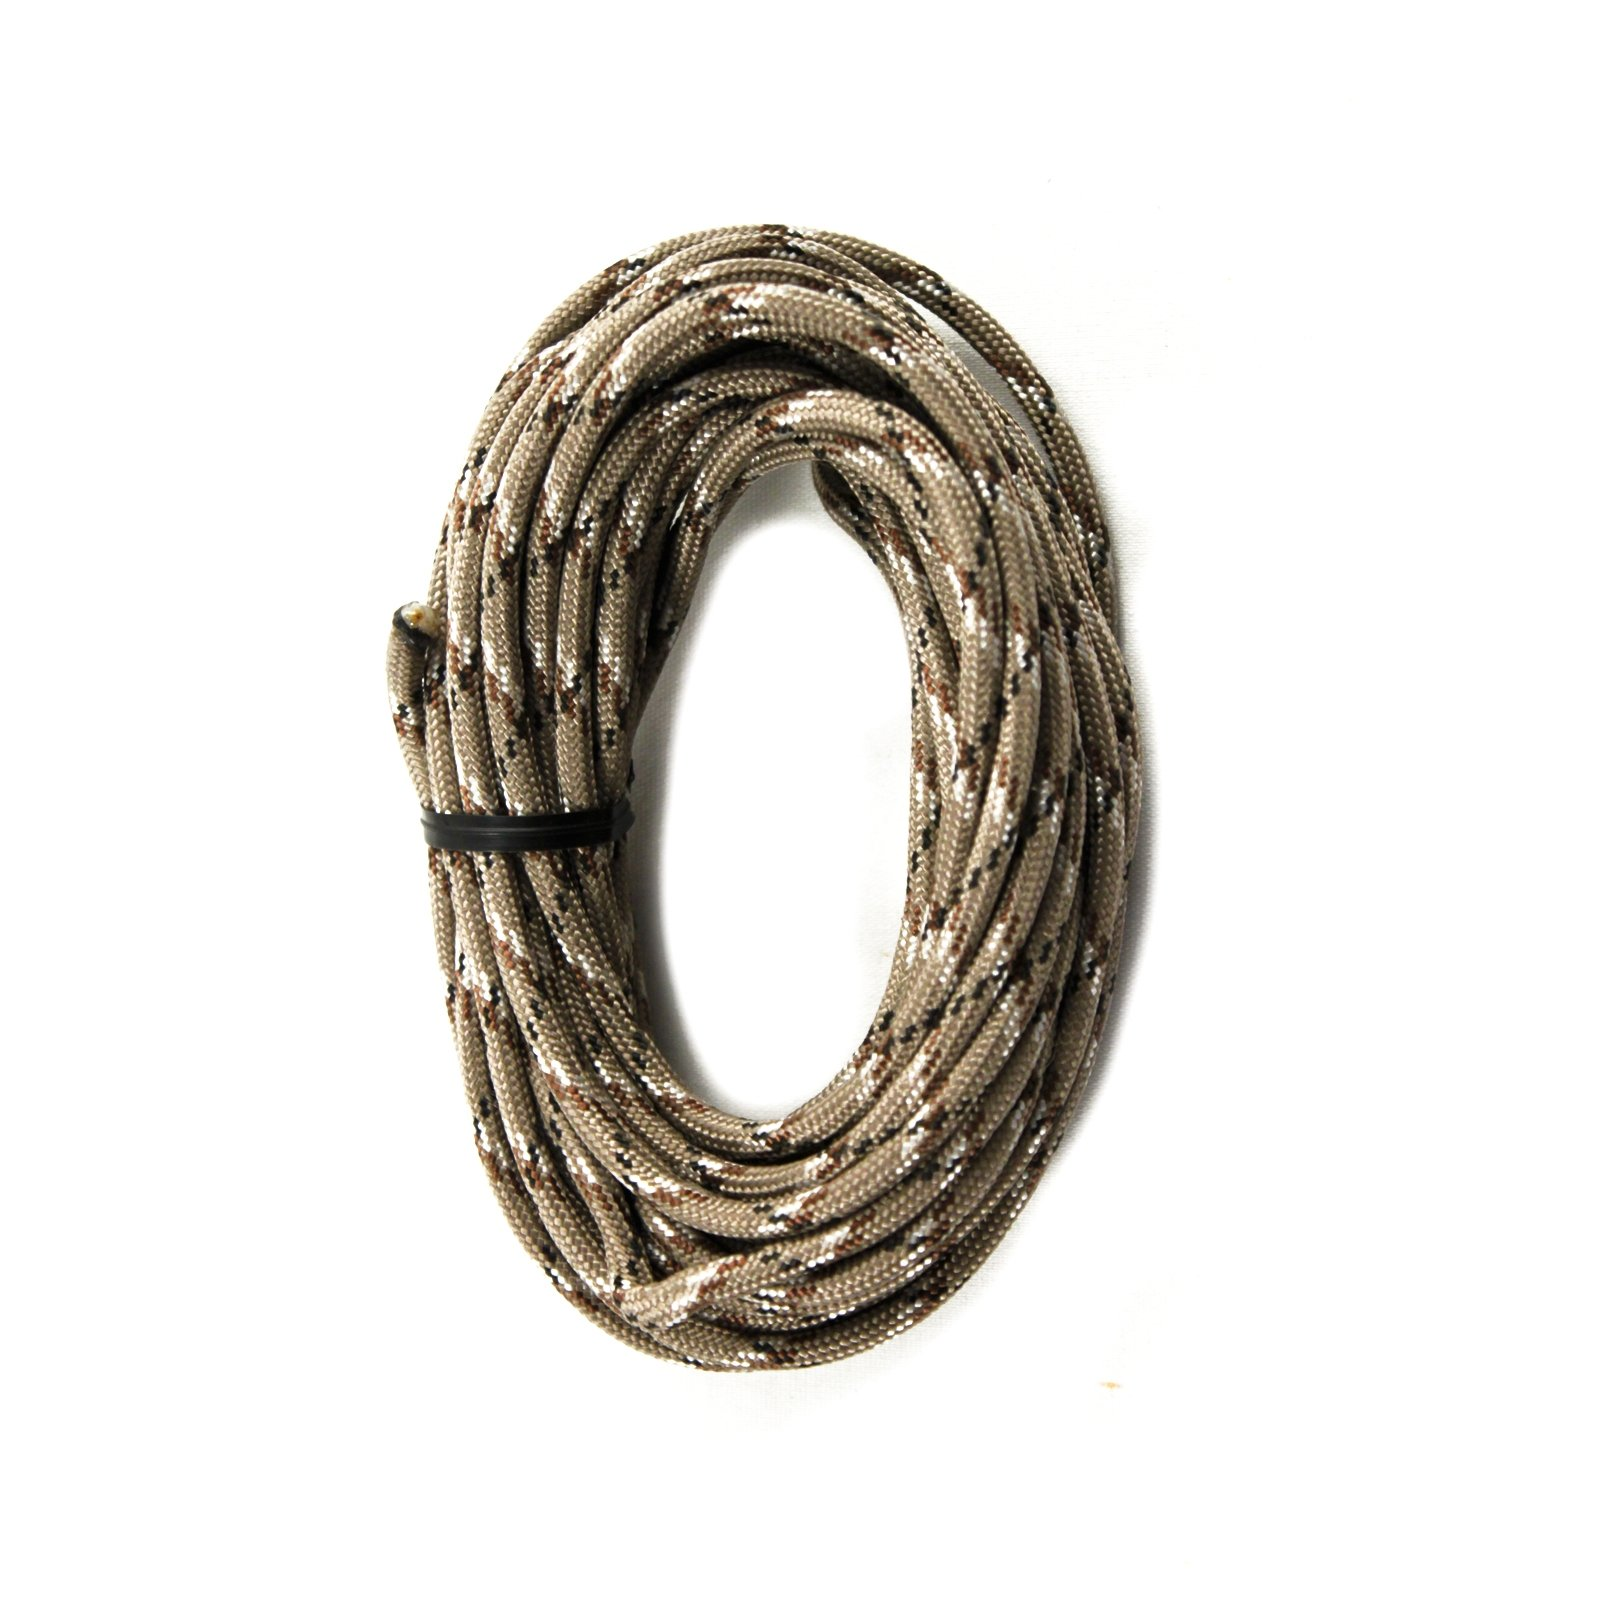 550lbs Strength Survival Paracord Rope Camping Hiking Desert Camo- 25ft